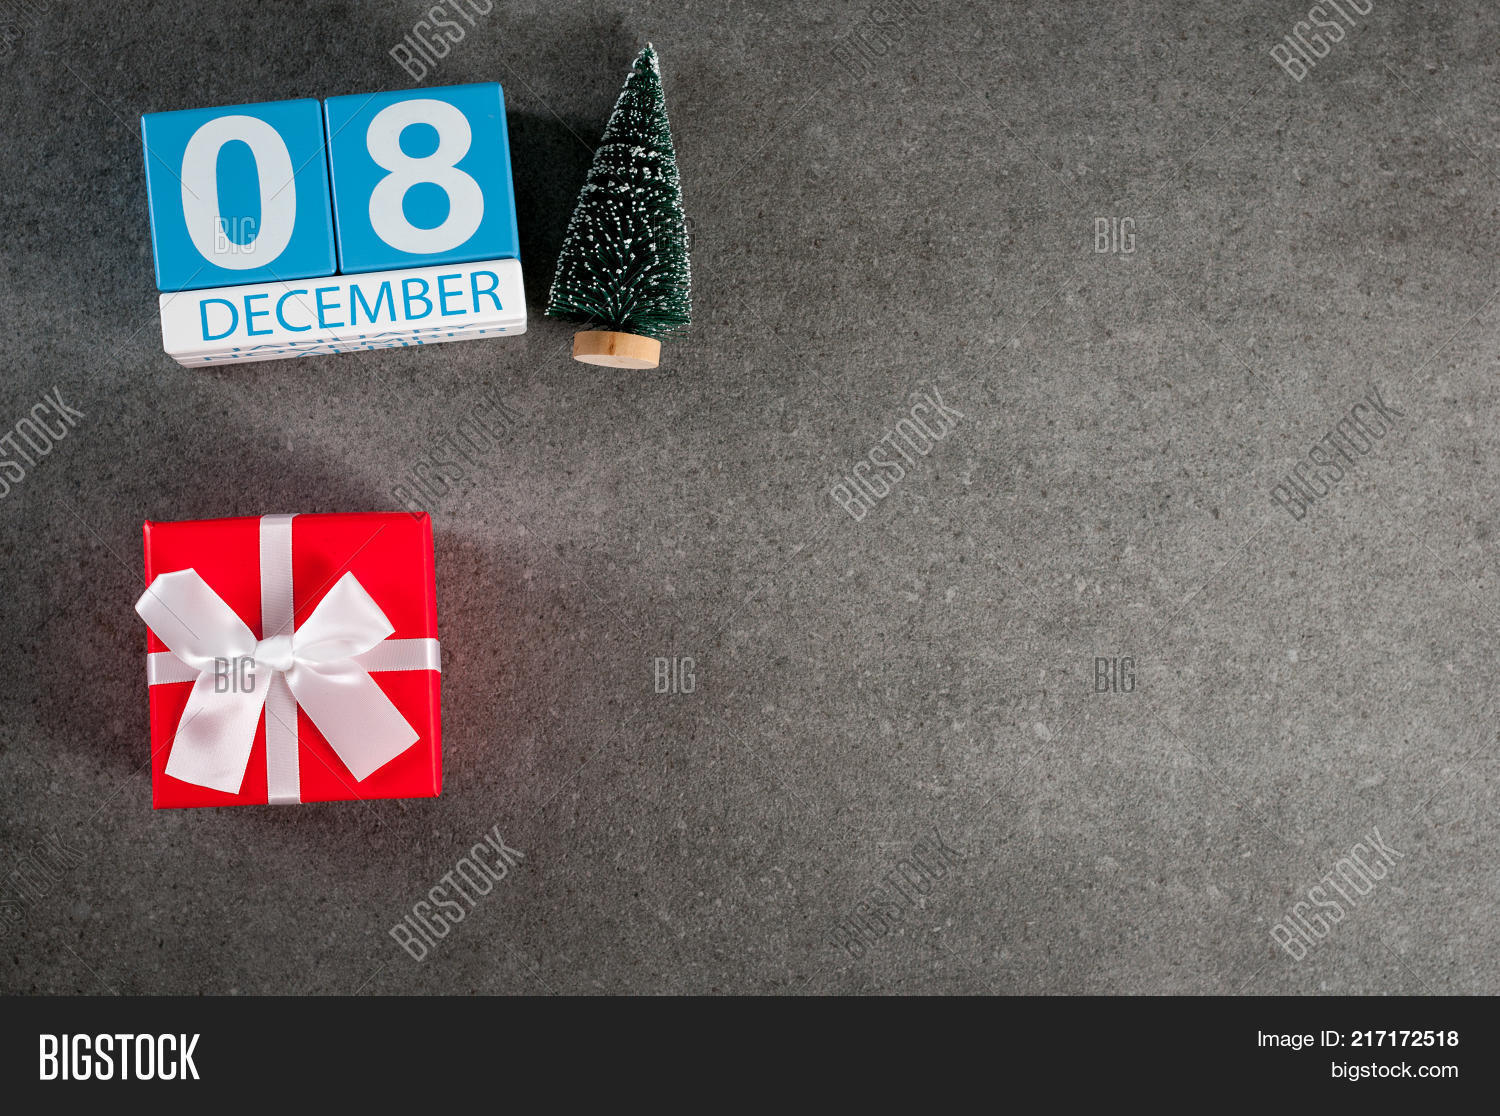 december 8th image 8 day of december month calendar with x mas gift